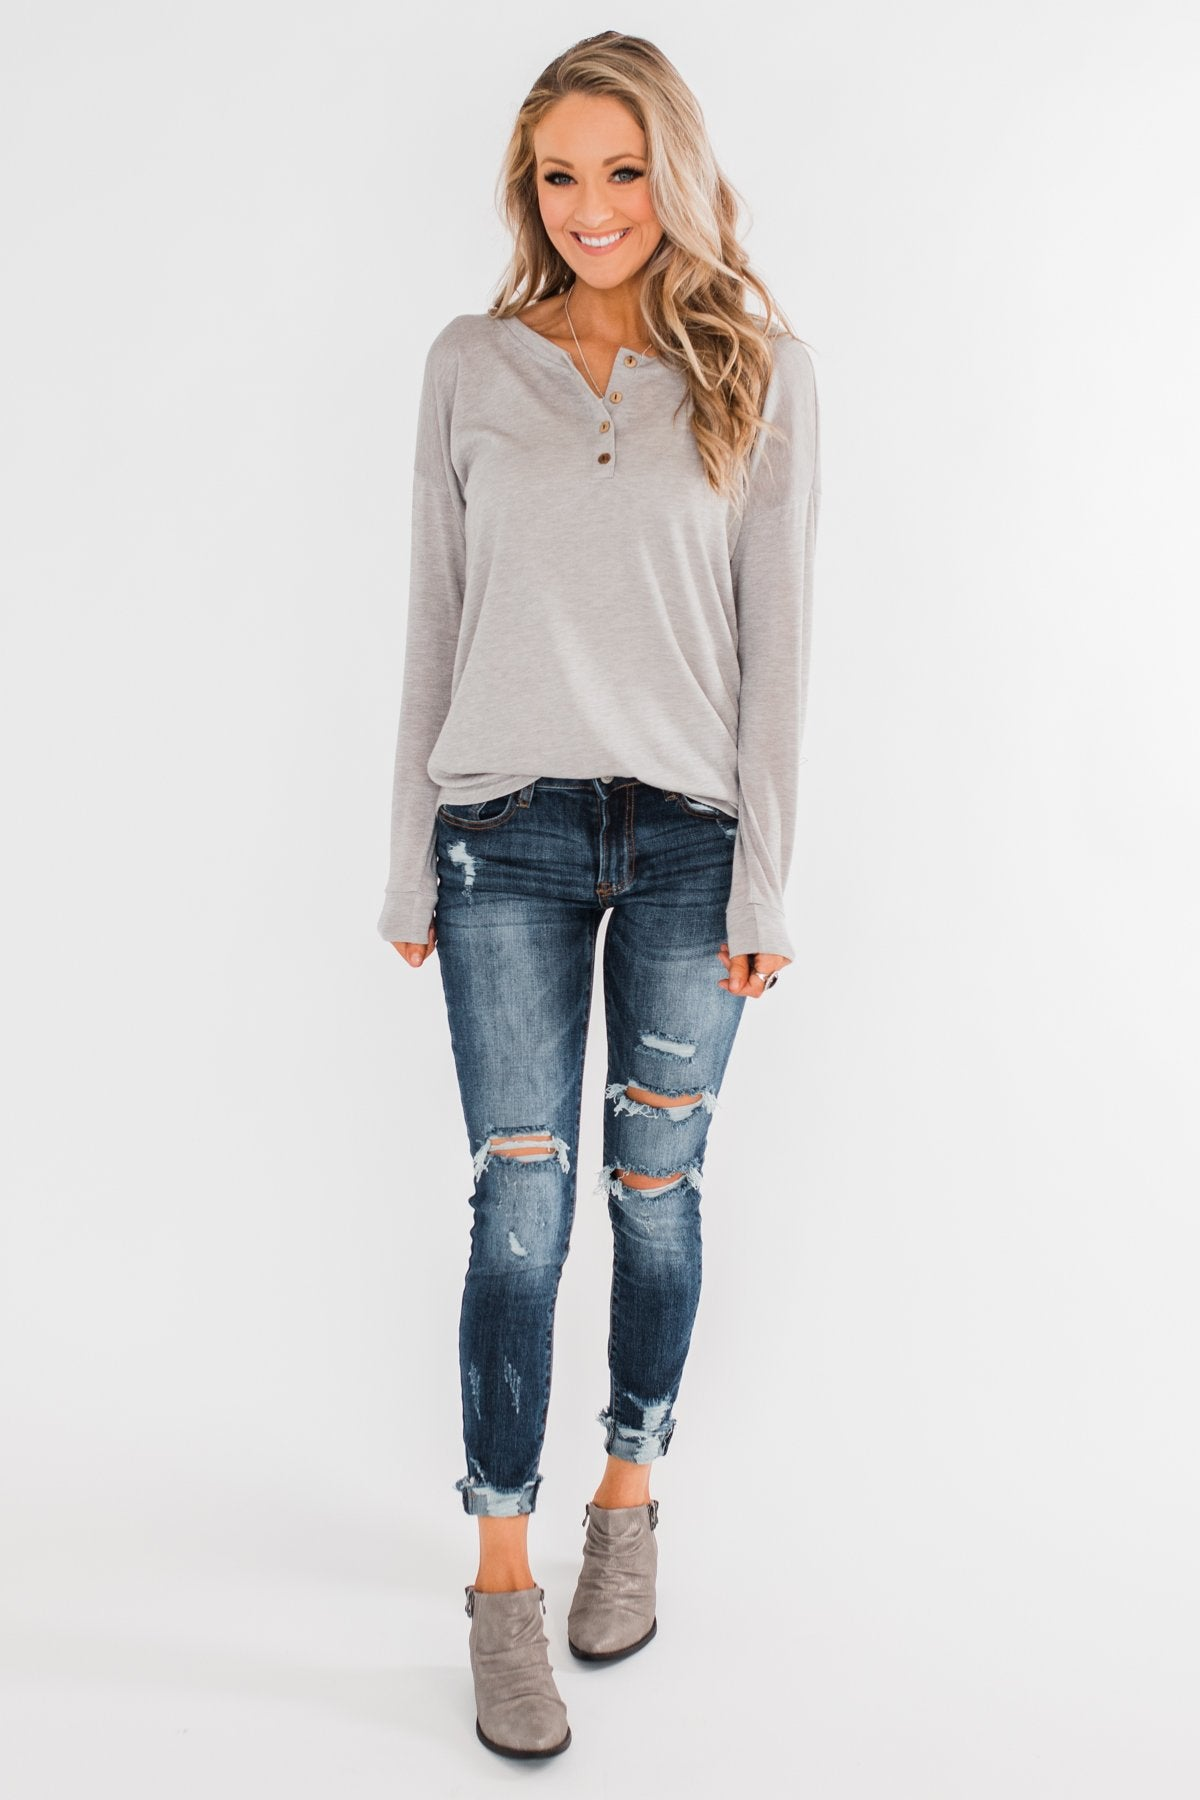 Cozy & Warm 4 Button Henley Top- Heather Gray